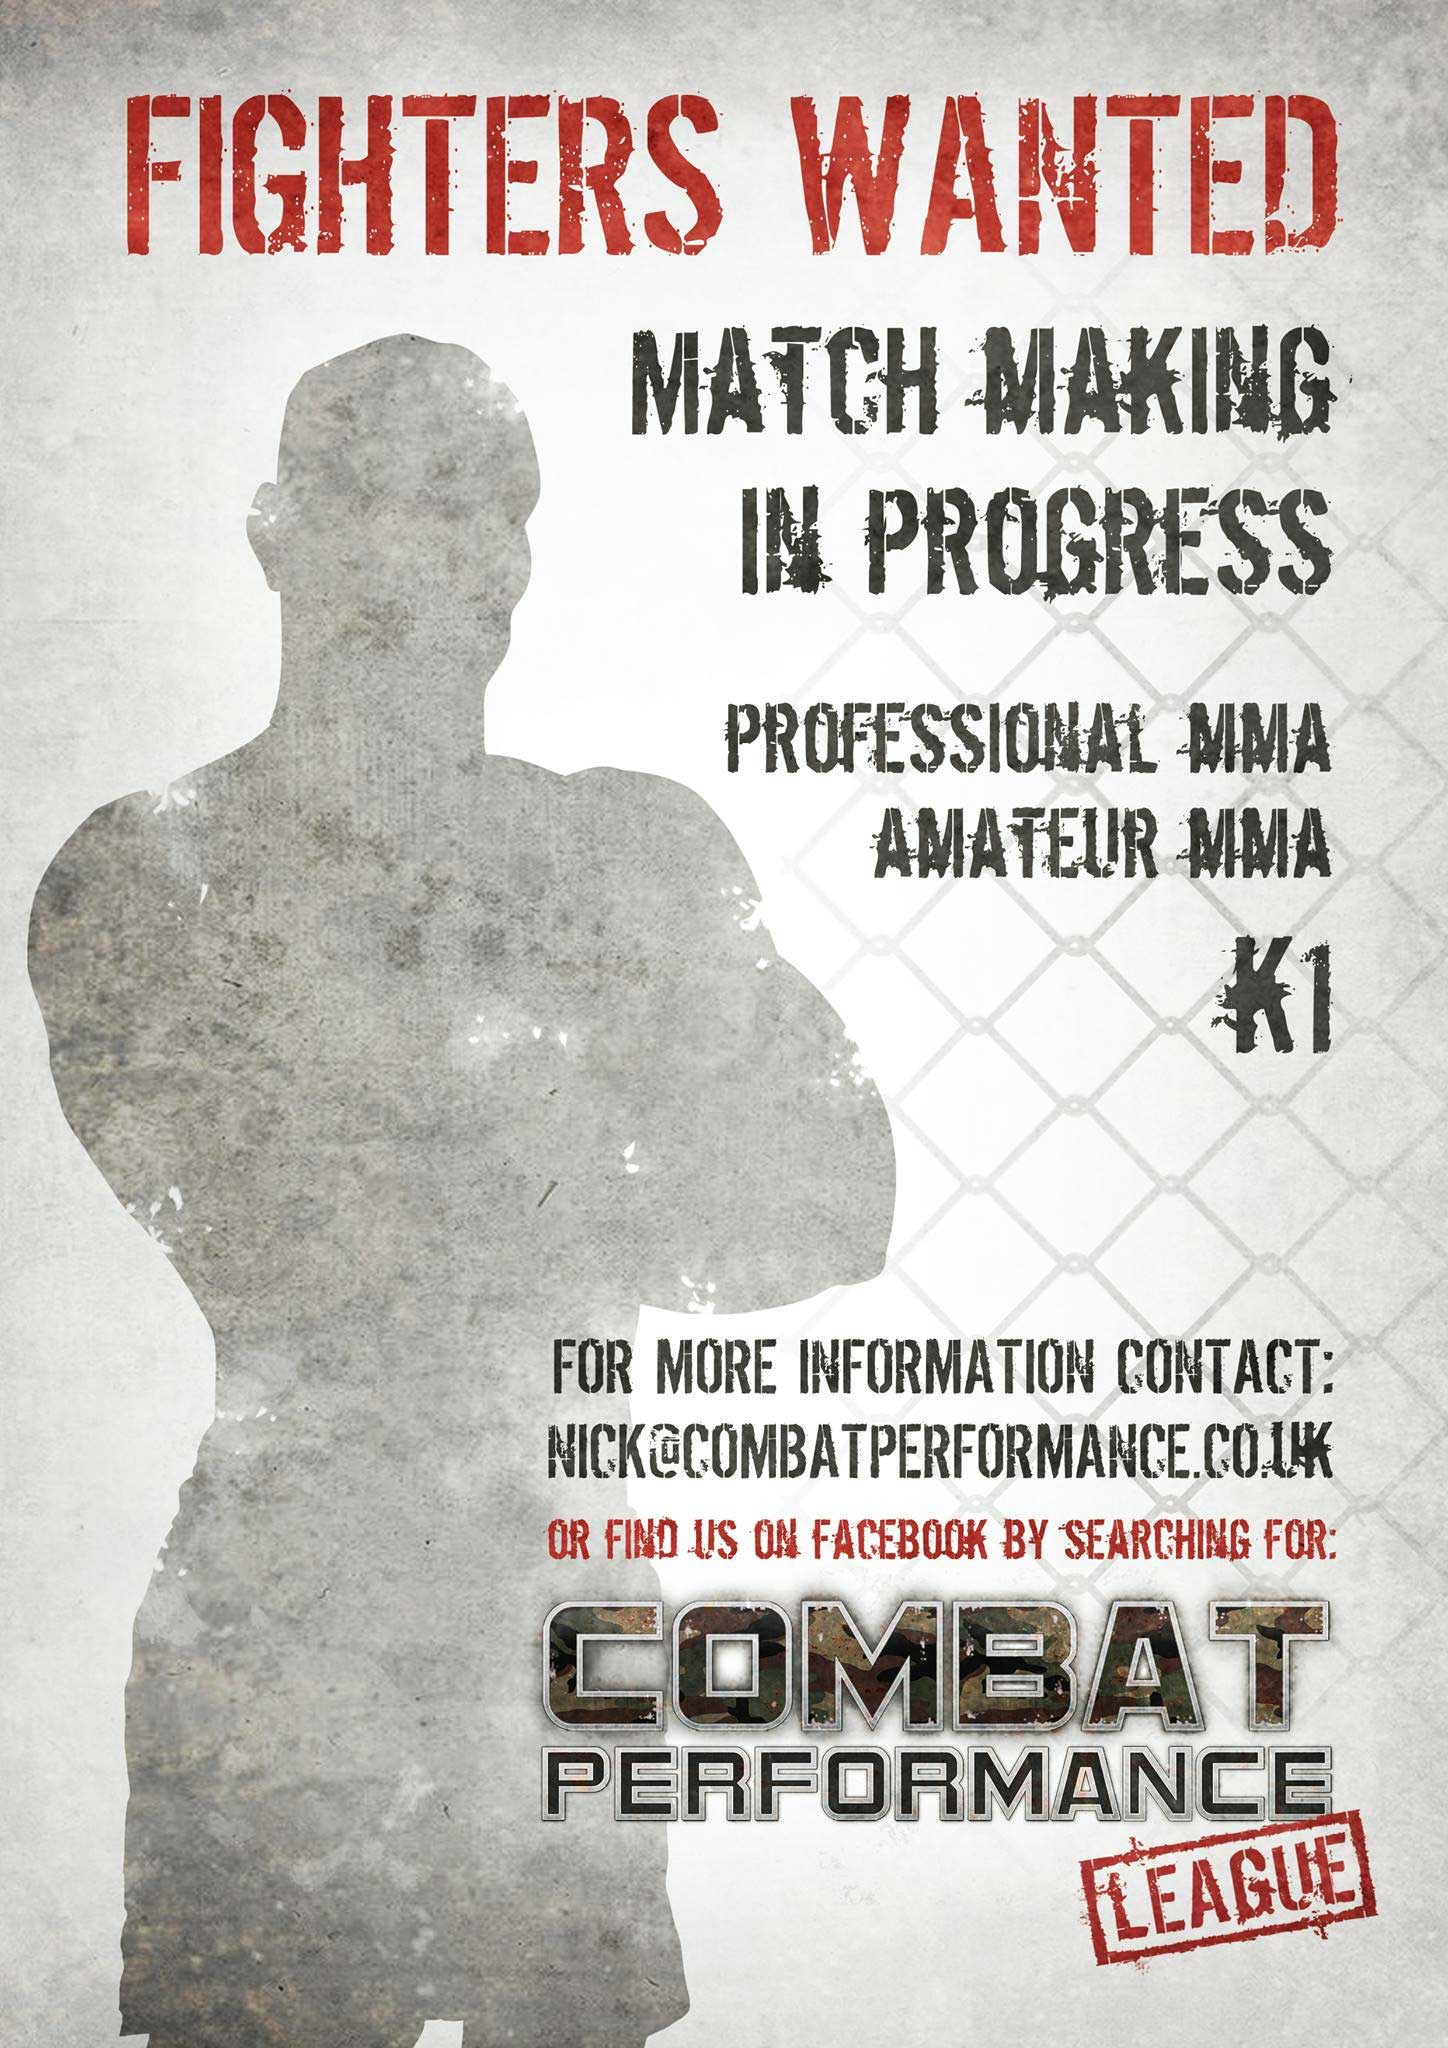 Combat Performance League Fighters Wanted Poster